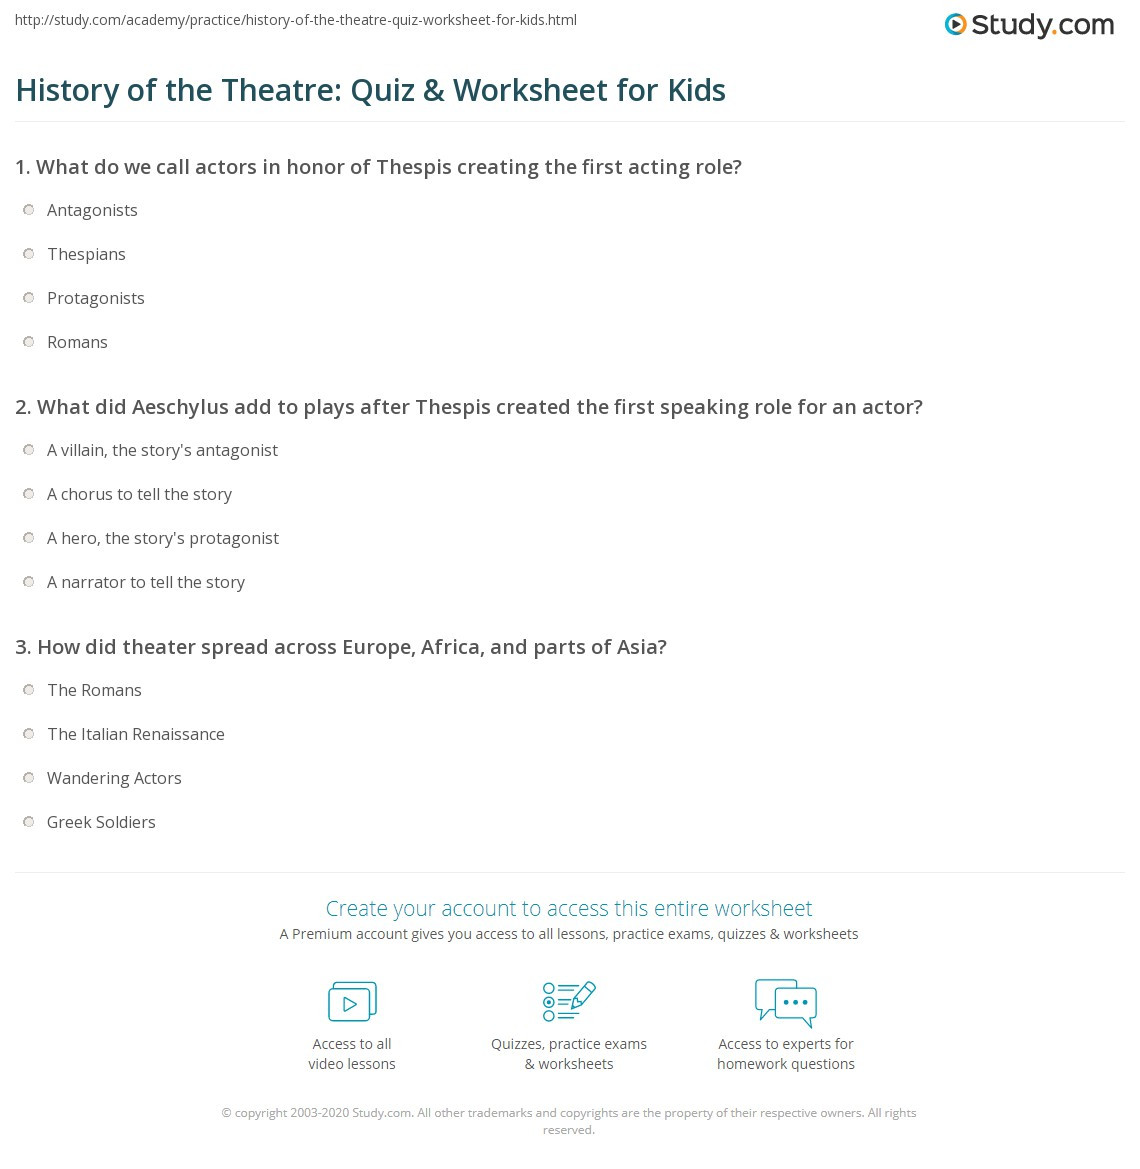 history of the theatre quiz worksheet for kids